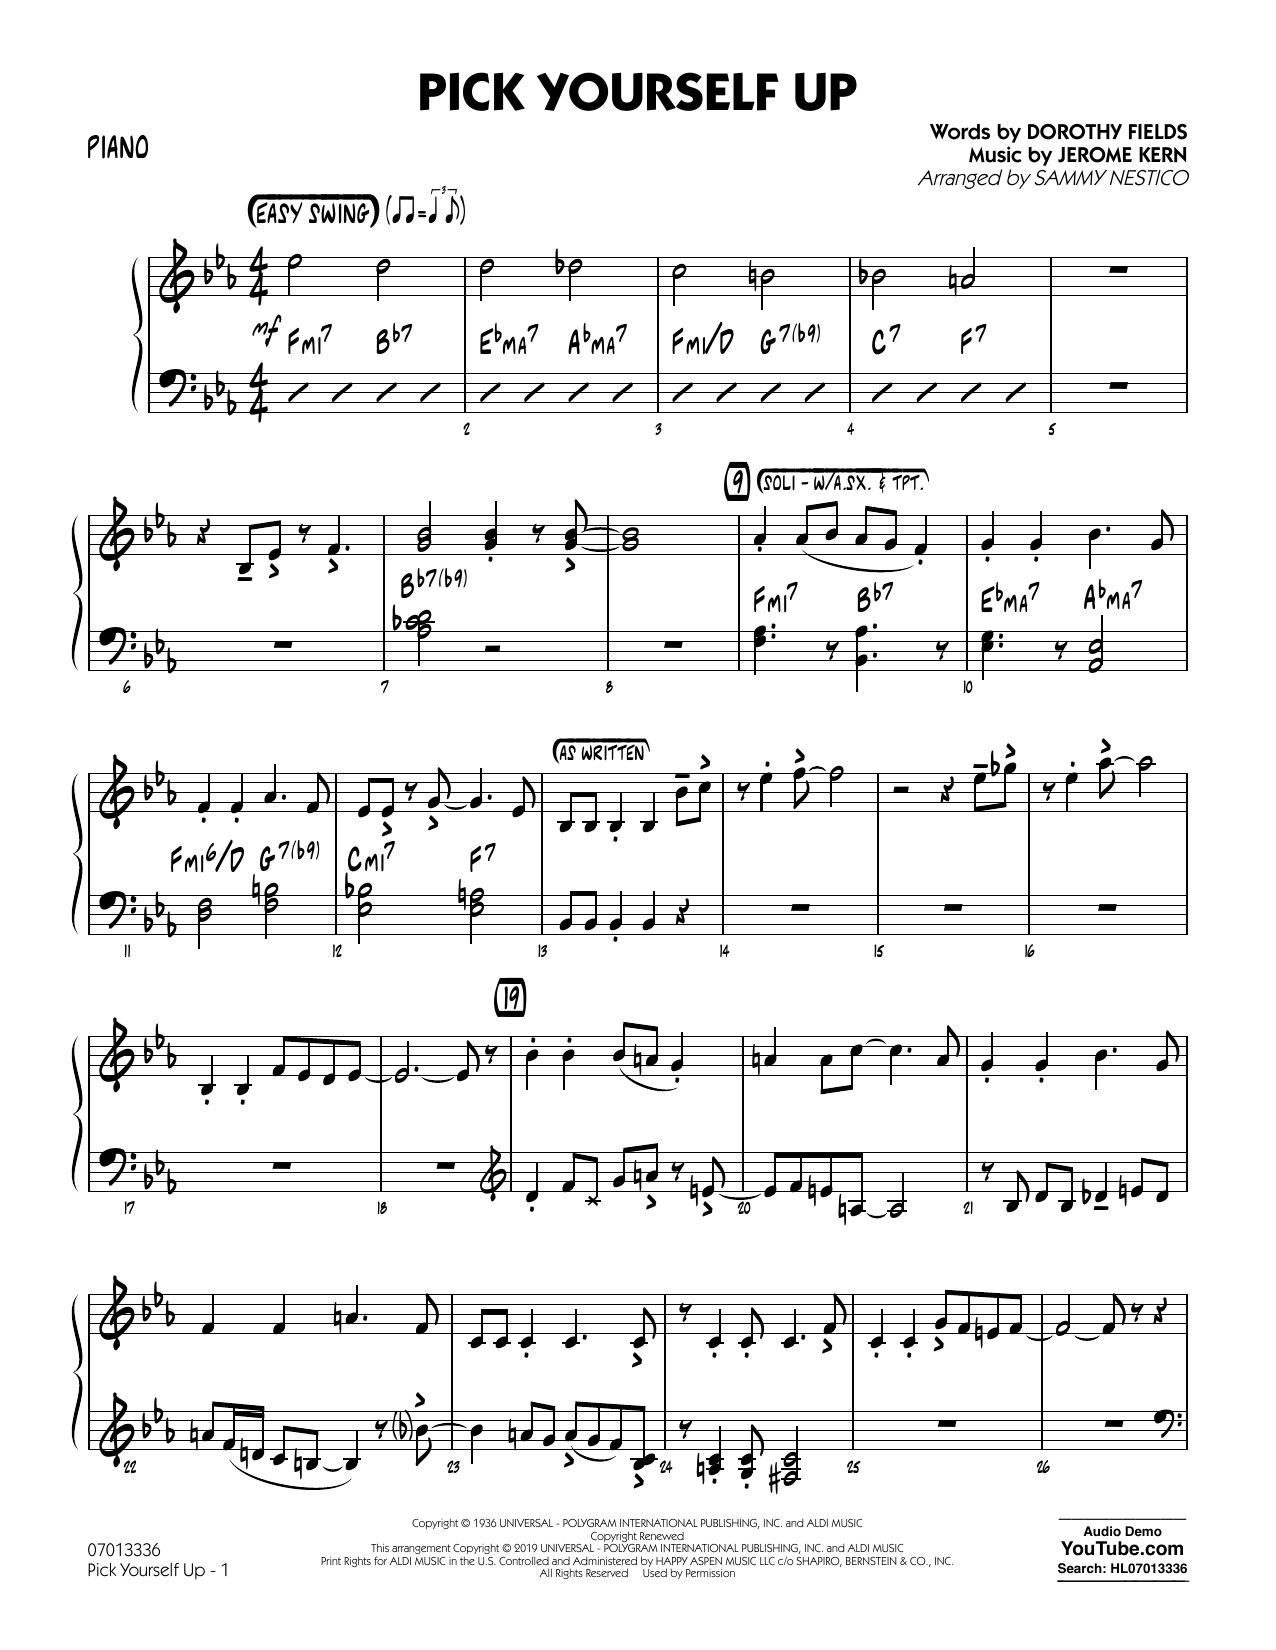 Jerome Kern Pick Yourself Up (arr. Sammy Nestico) - Piano sheet music preview music notes and score for Jazz Ensemble including 4 page(s)